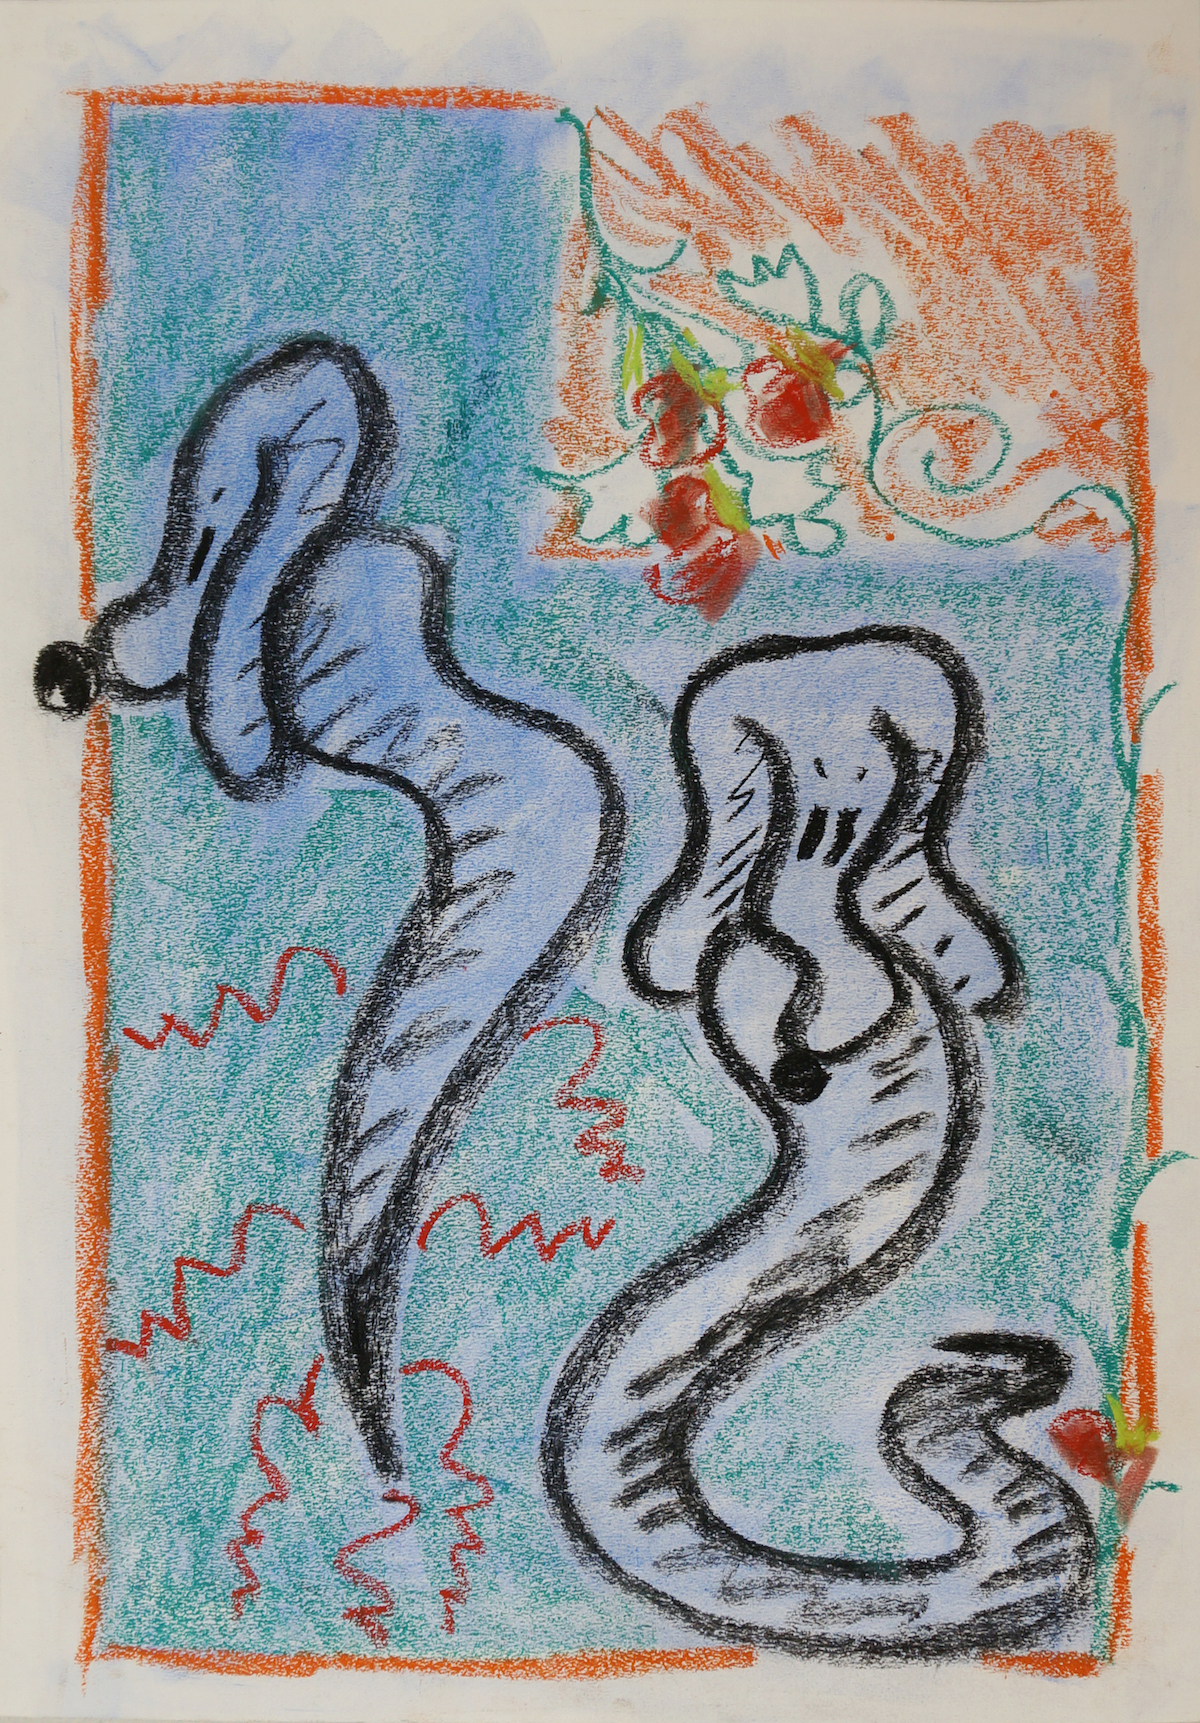 empty your mind wizards_chalk pastel on paper, 2015